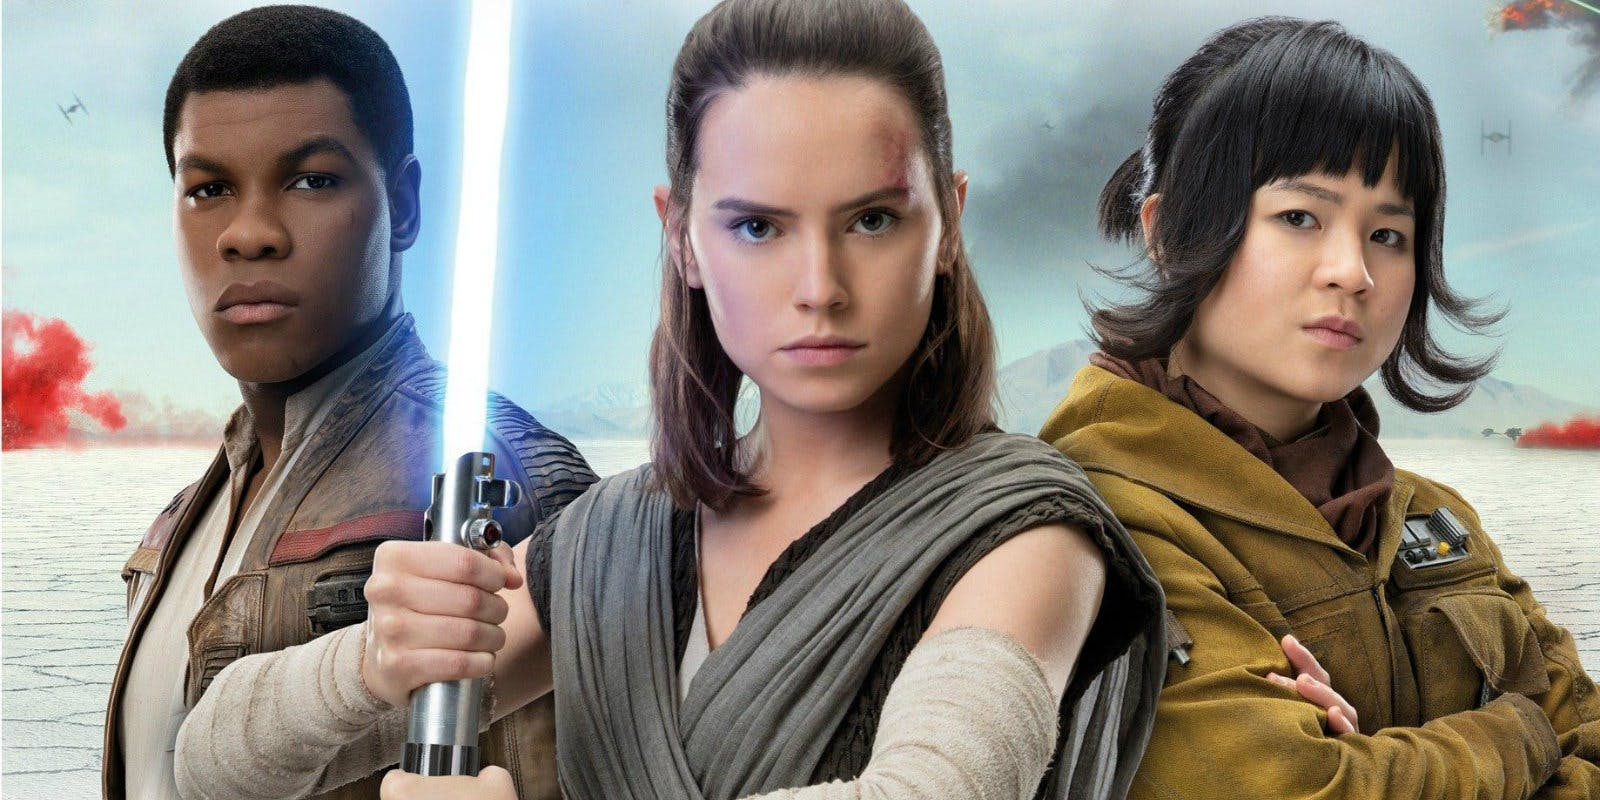 Filming On Star Wars: Episode IX Expected To Wrap By February 2019